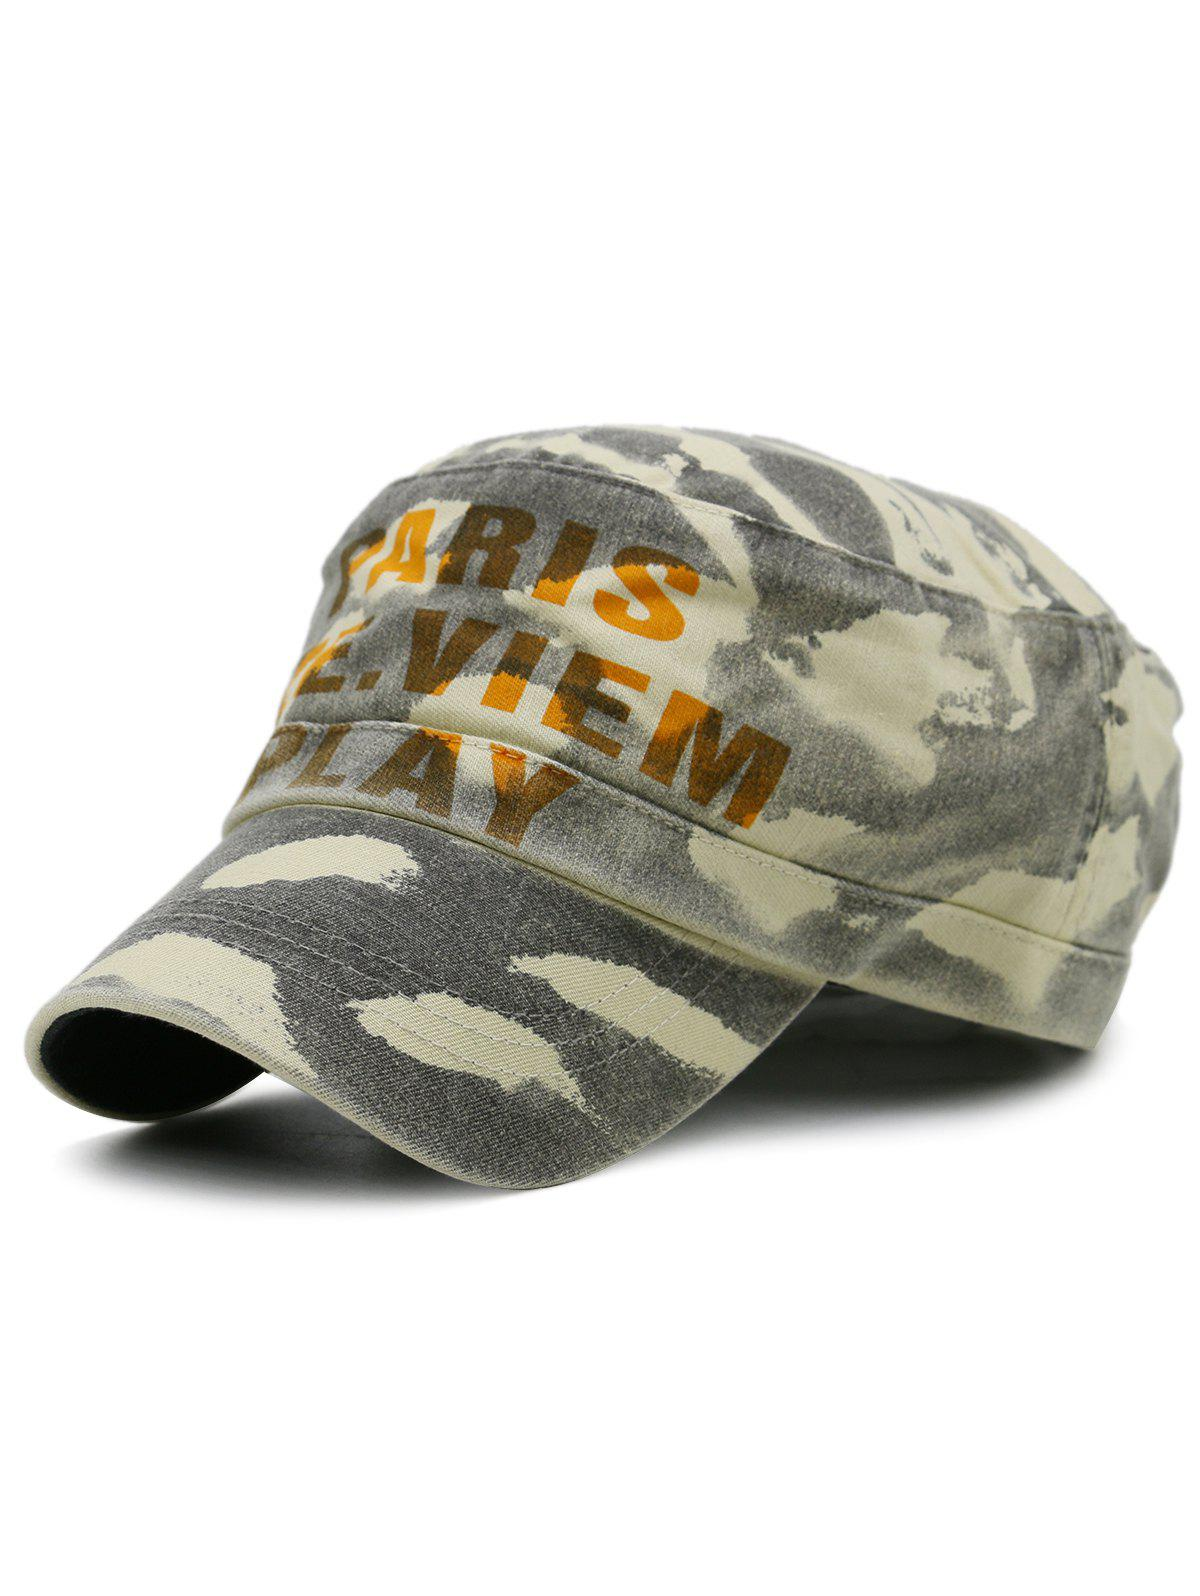 PARIS SEE VIEW PLAY Pattern Embellished Army Hat - GRAY